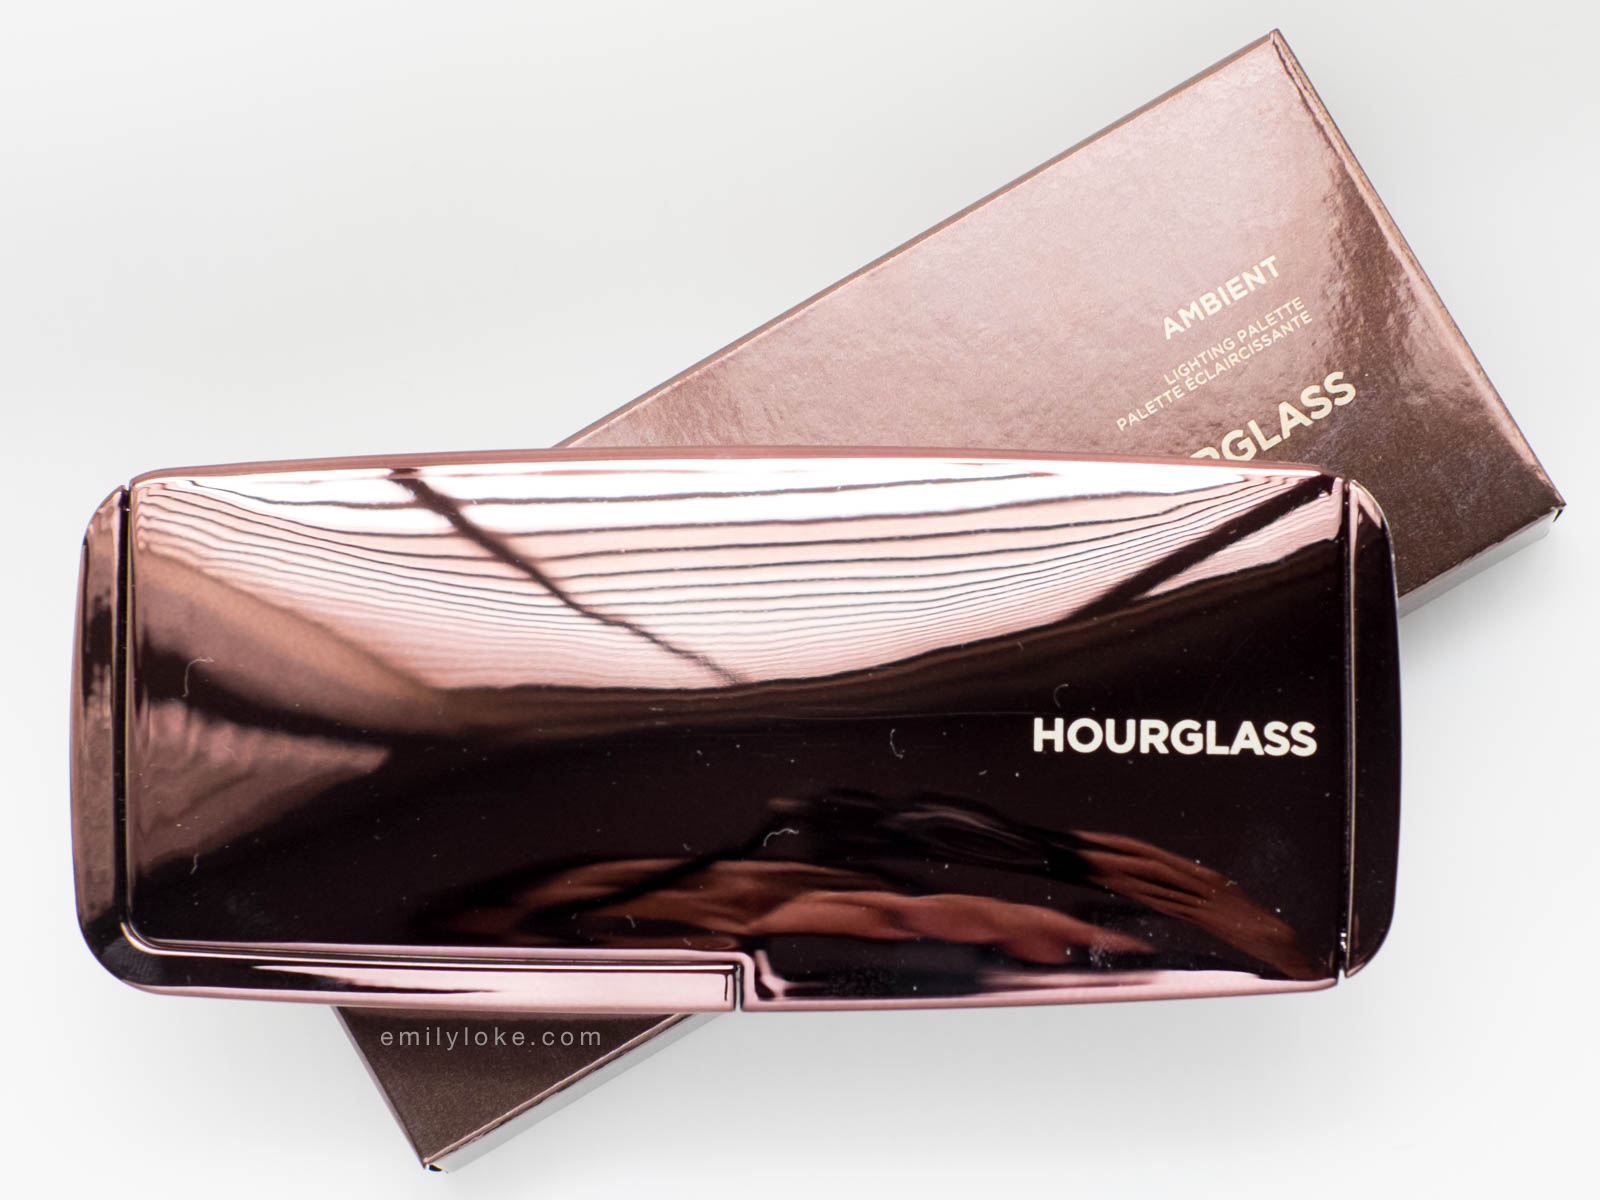 Hourglass Palette 5